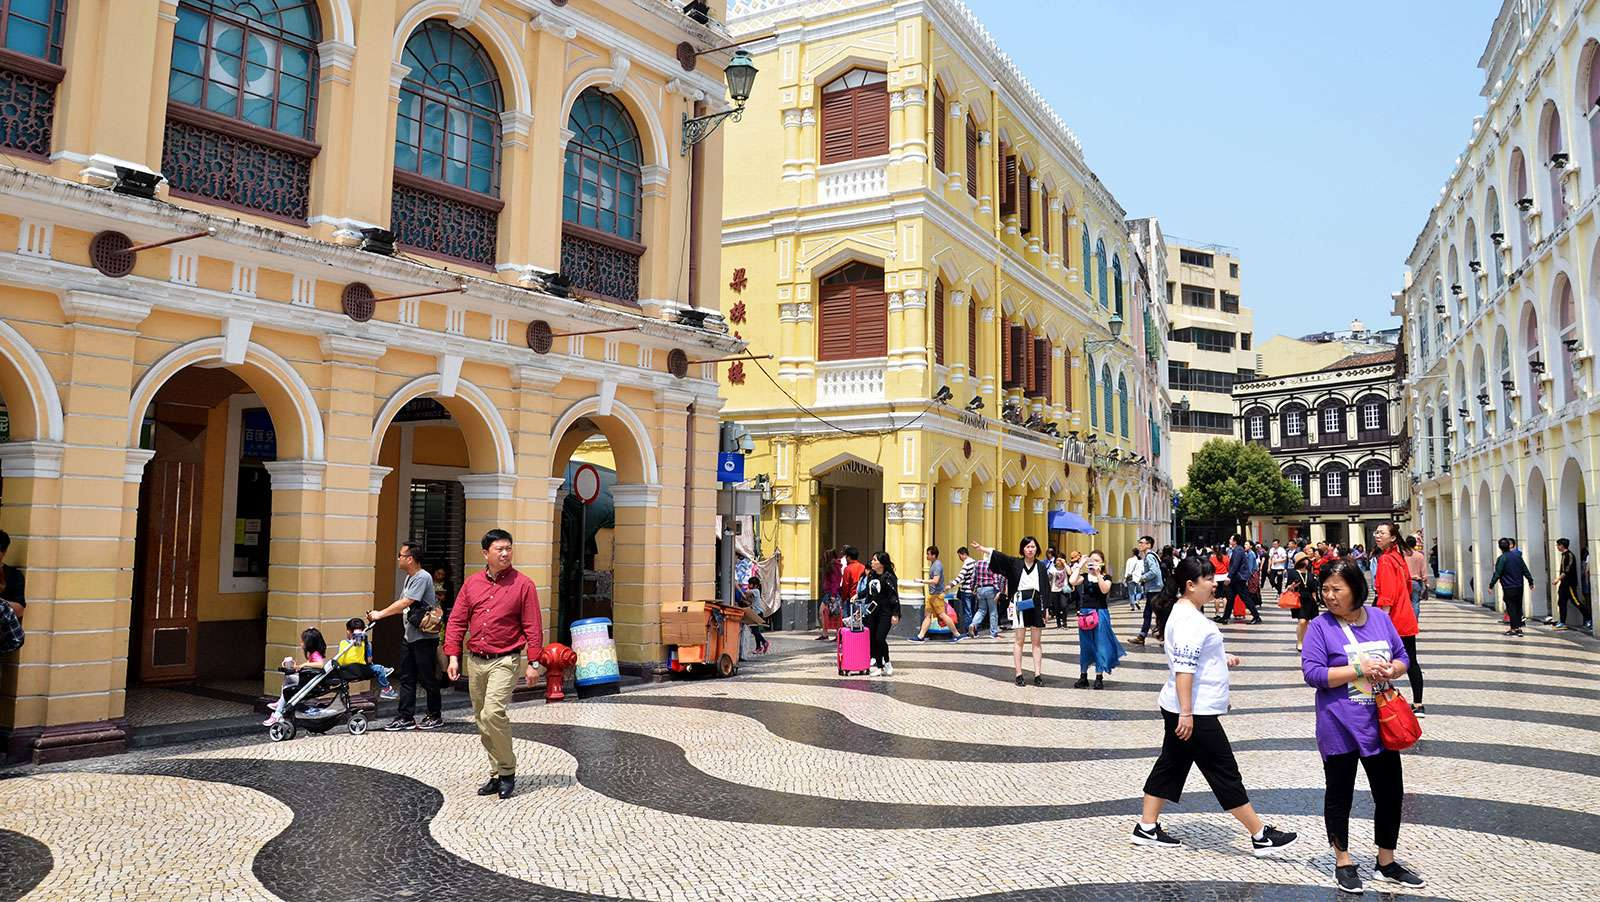 Gaming-related crime in Macau drops 4% in first five months of 2018